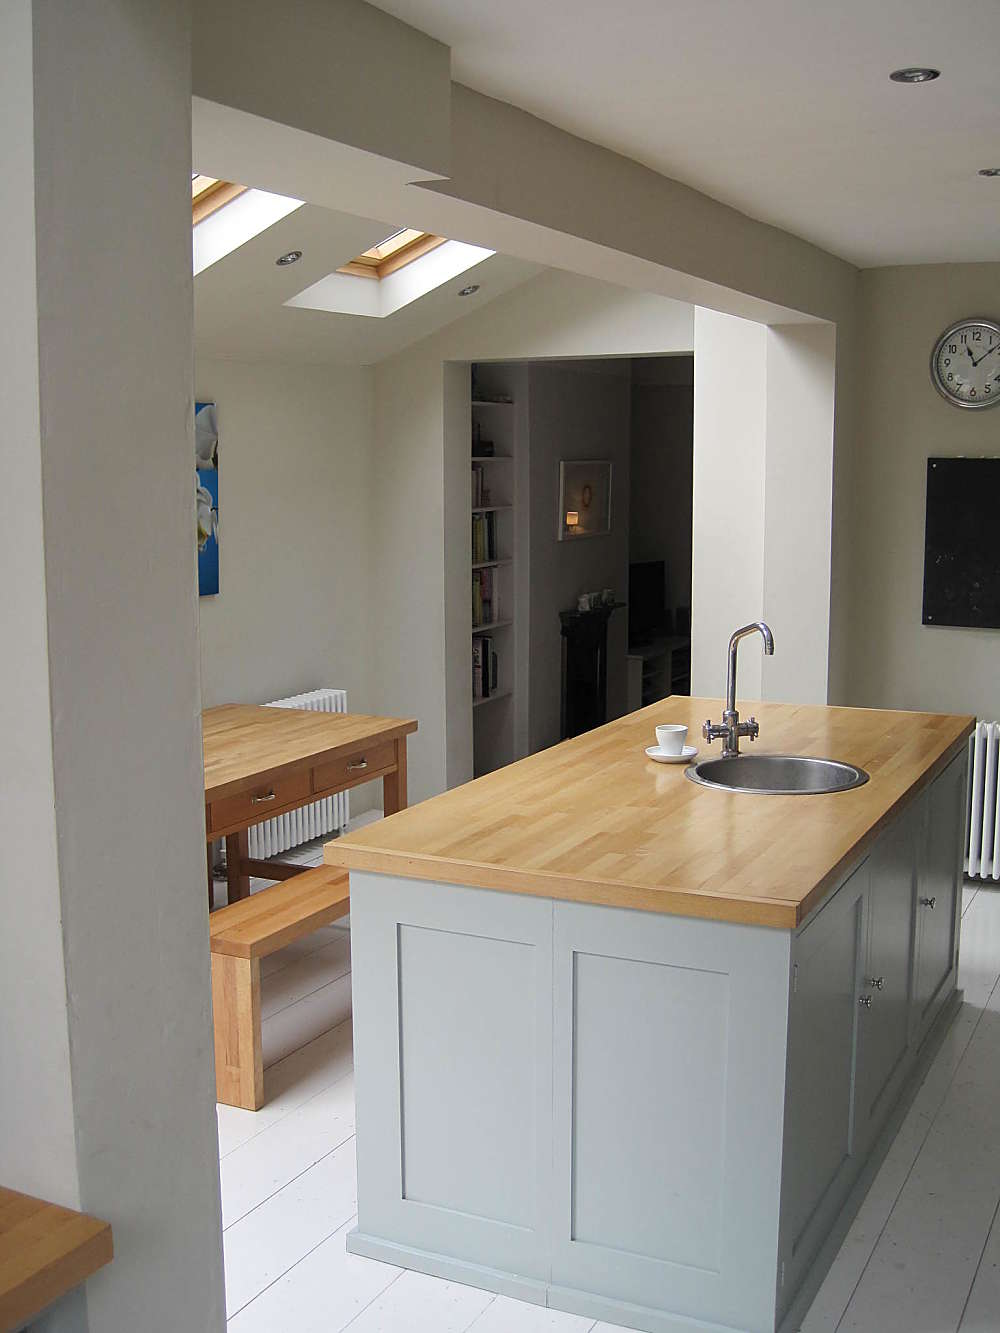 Kitchen Extension And Room In The Roof Mccurdy Architecture